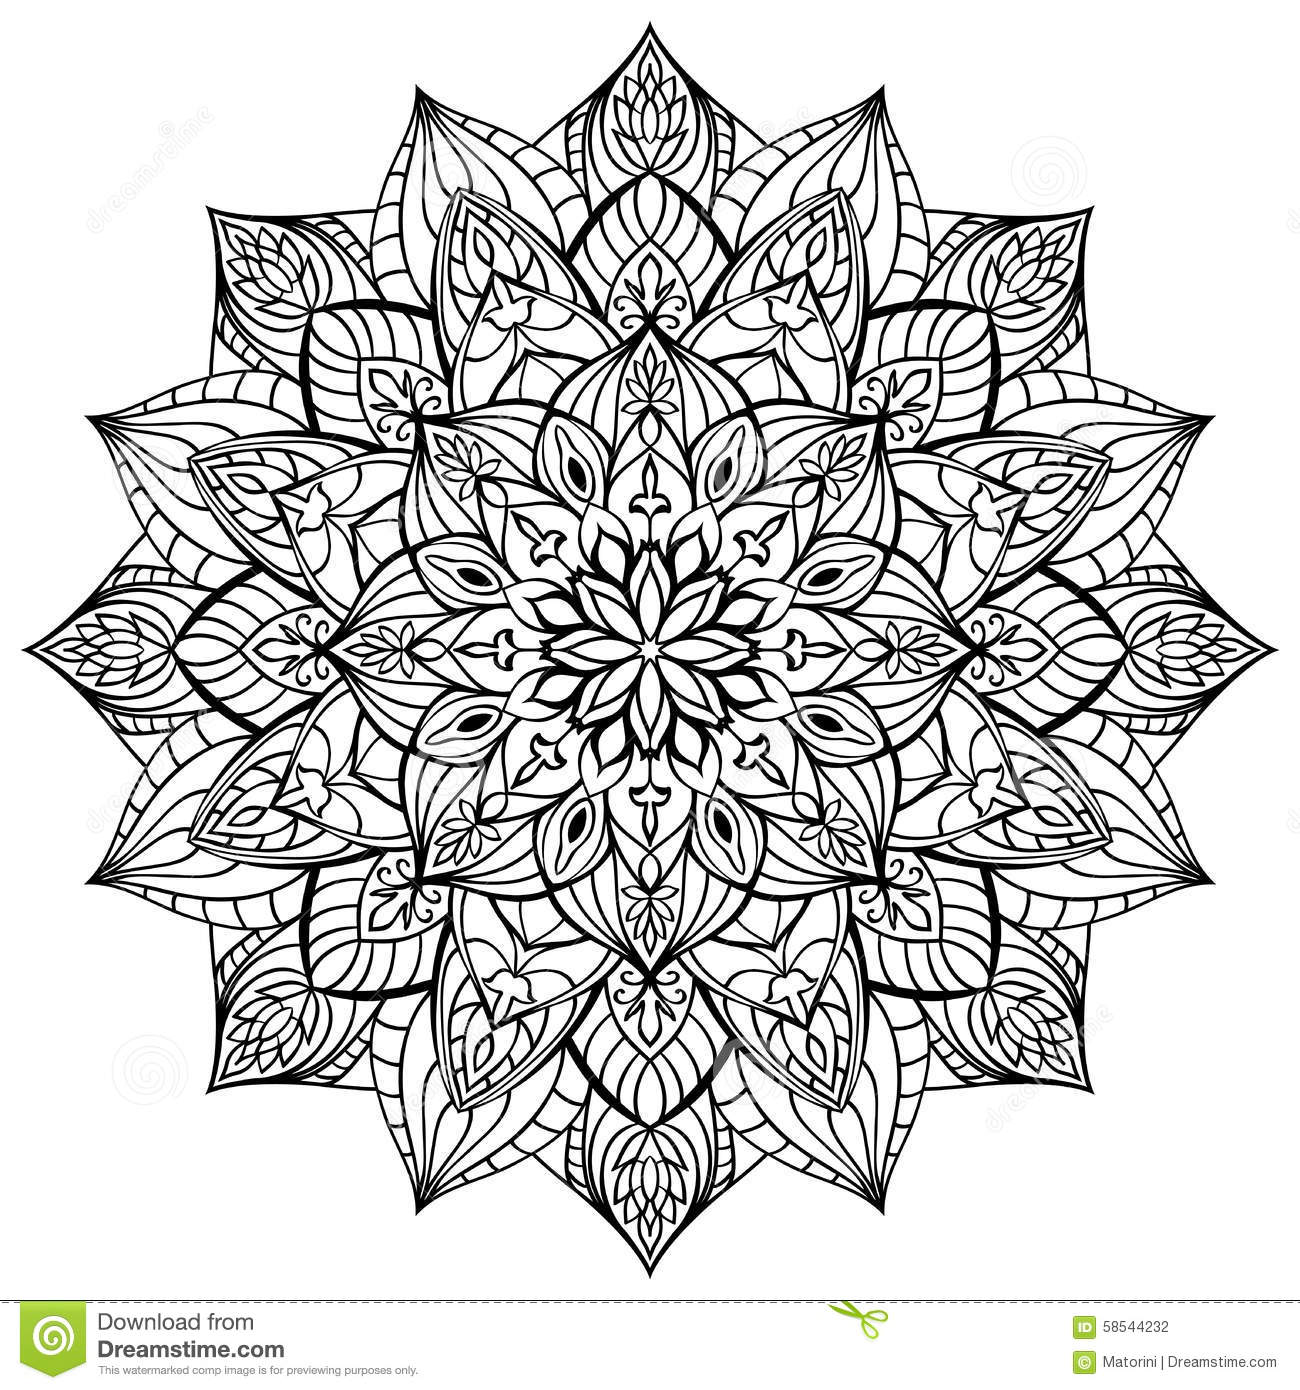 moreover  besides mandalas de flores  15  web additionally coloriage adulte  plexe ville in addition  moreover c2b4b32508fe59236556dc0dca73811f together with coloriage couronne noel par mashabr moreover zentangle a colorier poisson par artnataliia additionally  together with free mandala designs to print 2 in addition . on intricate flower coloring pages for adults pinterest